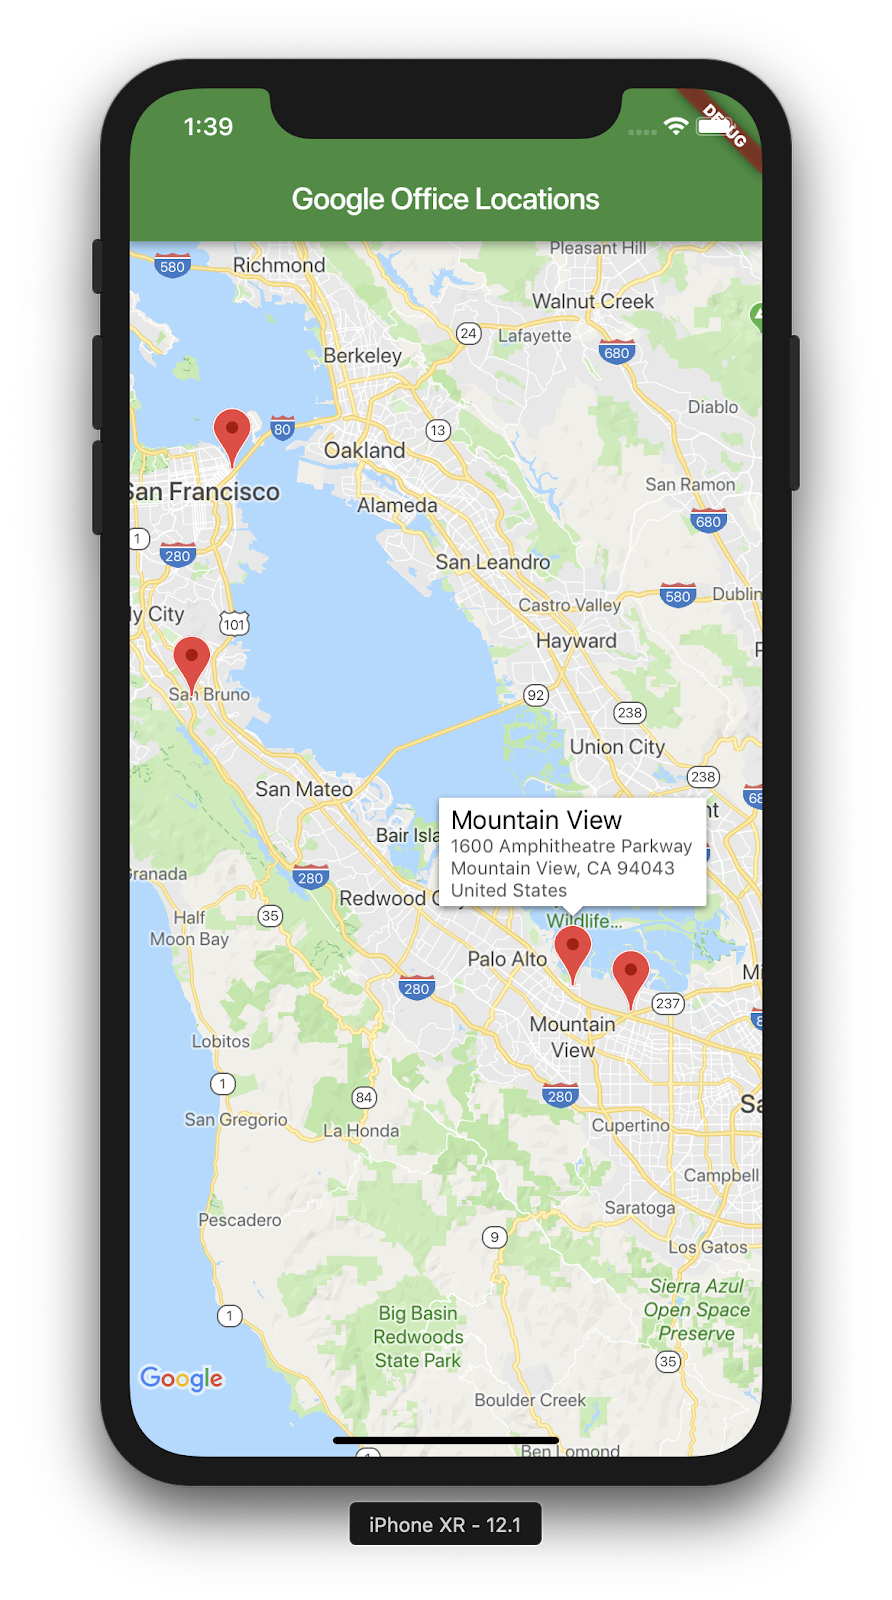 Adding Google Maps to a Flutter App on google search, google translate, search maps, bing maps, waze maps, web mapping, yahoo! maps, road map usa states maps, gppgle maps, gogole maps, google goggles, android maps, topographic maps, stanford university maps, msn maps, route planning software, google voice, google sky, aerial maps, googlr maps, goolge maps, aeronautical maps, satellite map images with missing or unclear data, google map maker, iphone maps, amazon fire phone maps, google chrome, online maps, googie maps, google mars, google docs, microsoft maps, google moon, ipad maps,